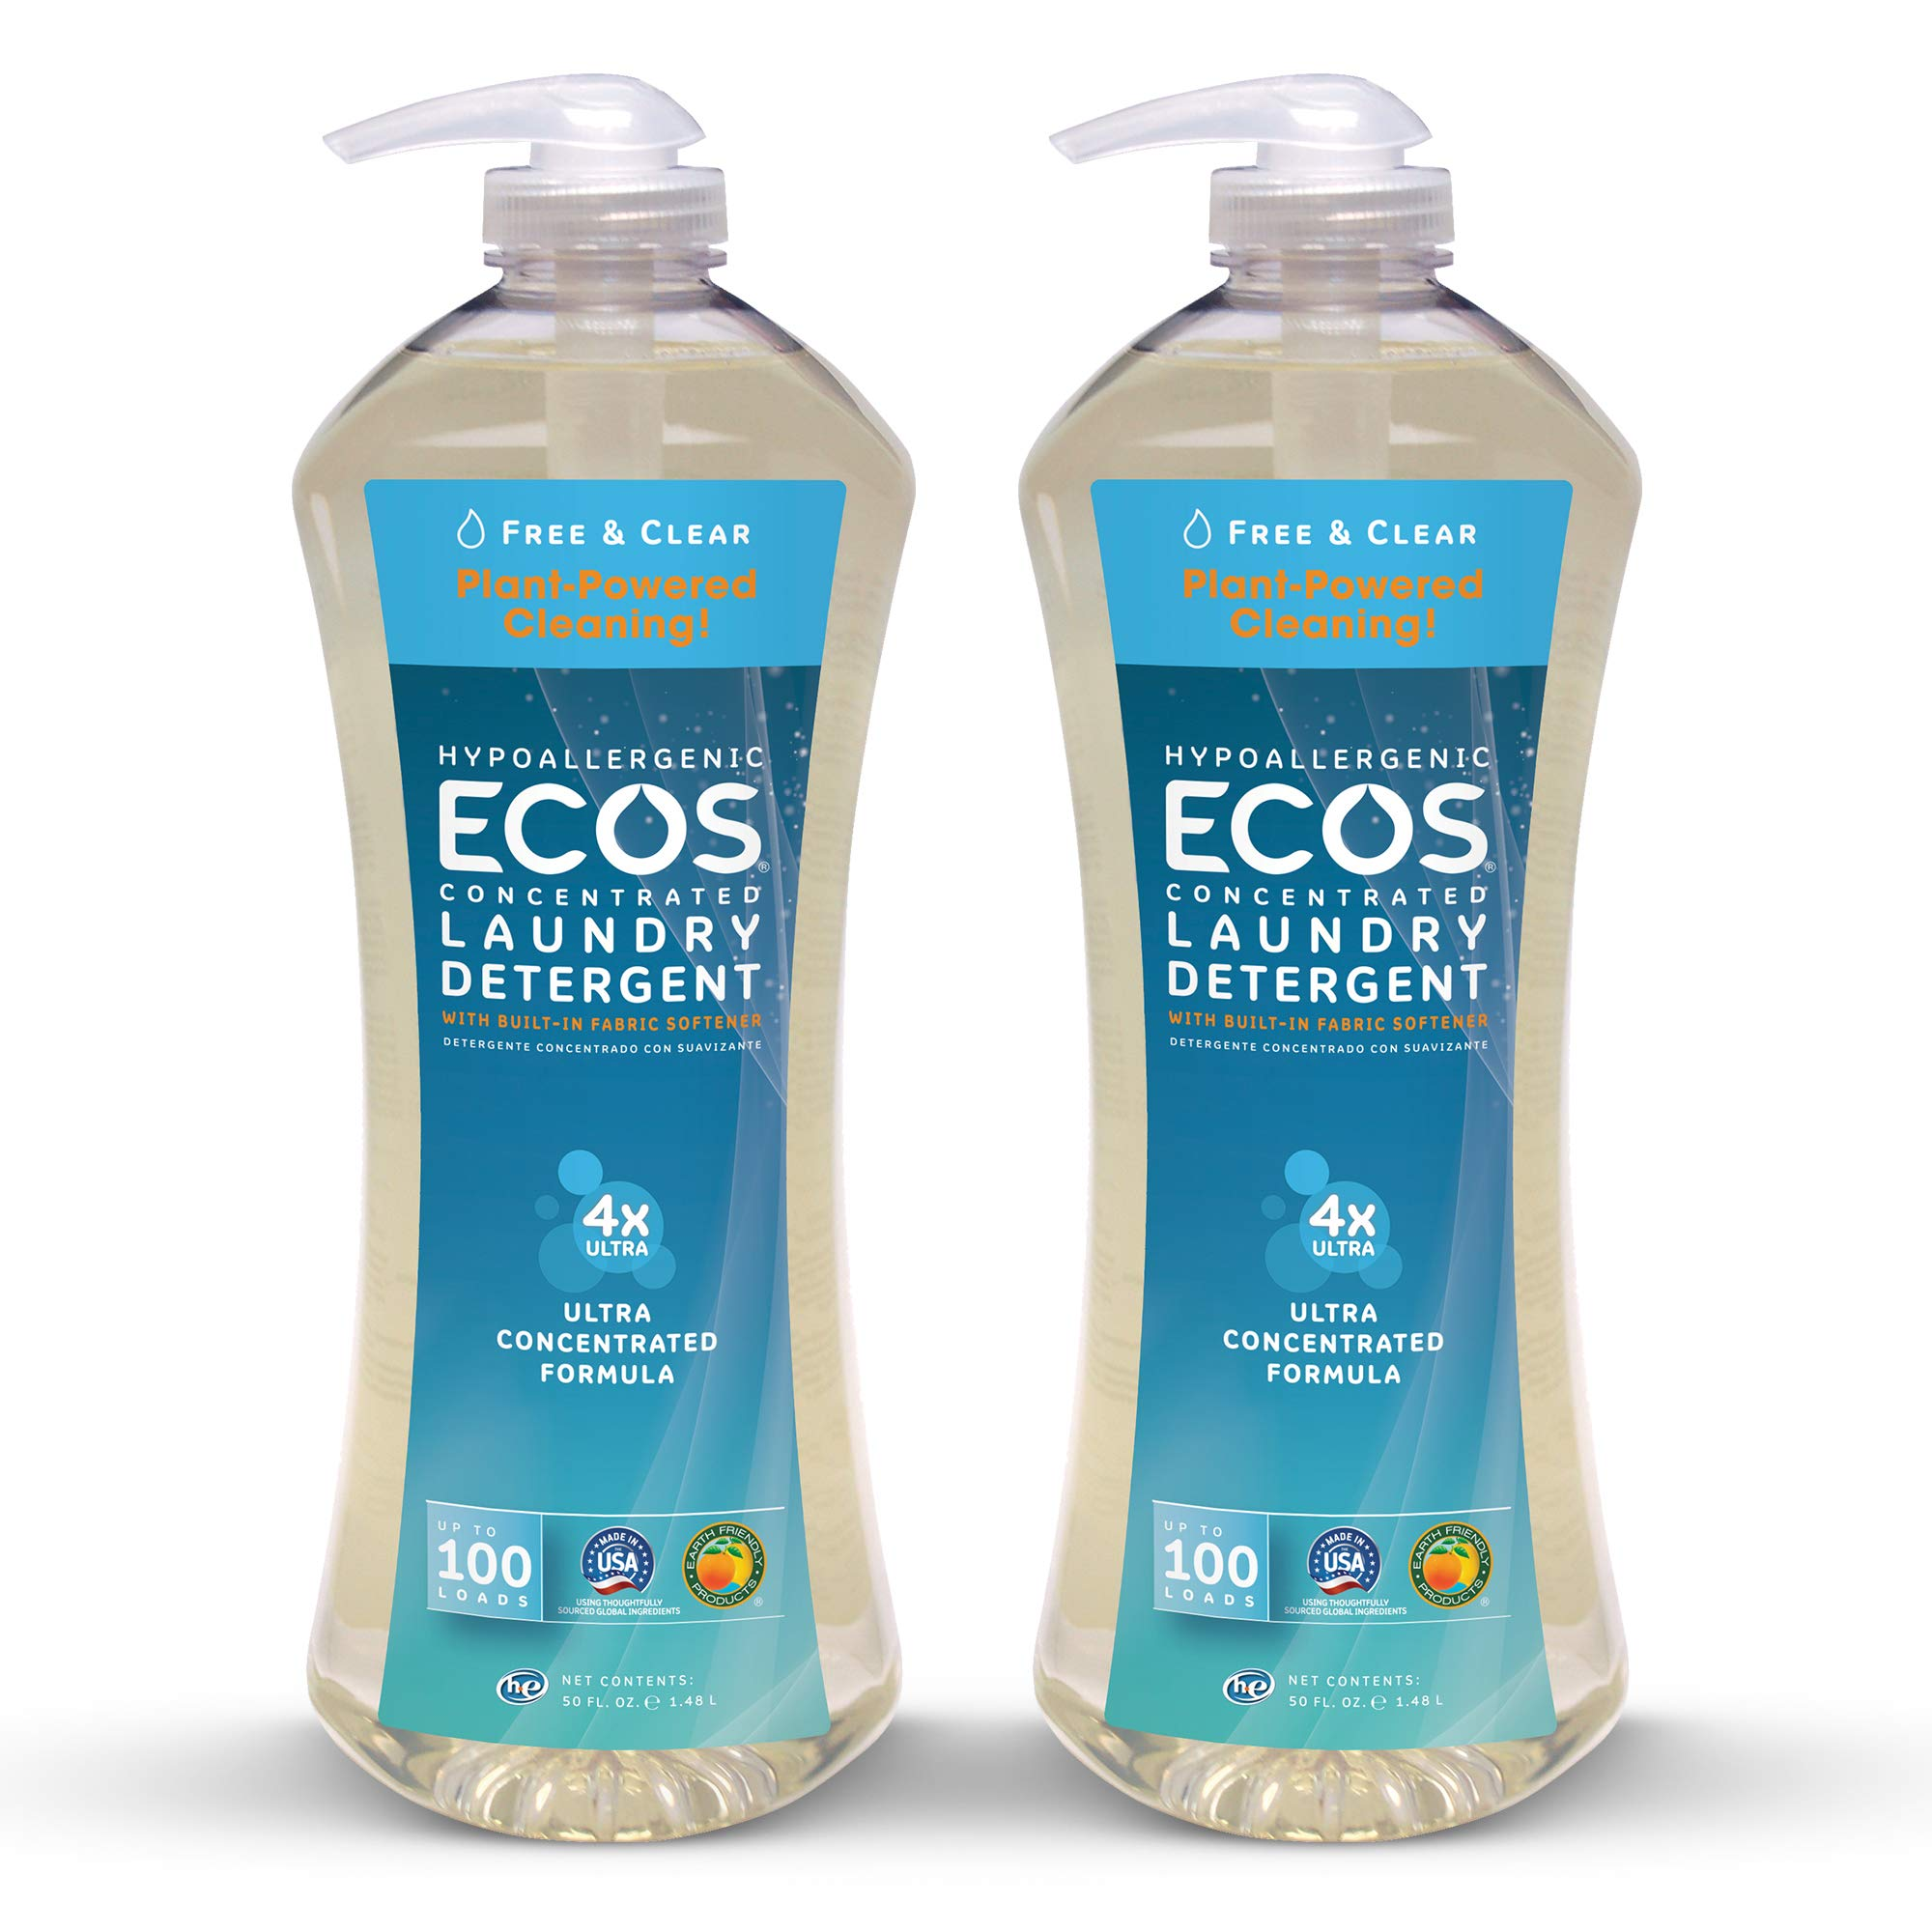 Earth Friendly Products Ecos 4X Ultra Concentrated Liquid Laundry Detergent, 200 Loads, 2 x 50 oz Free & Clear (2Count) by Earth Friendly Products